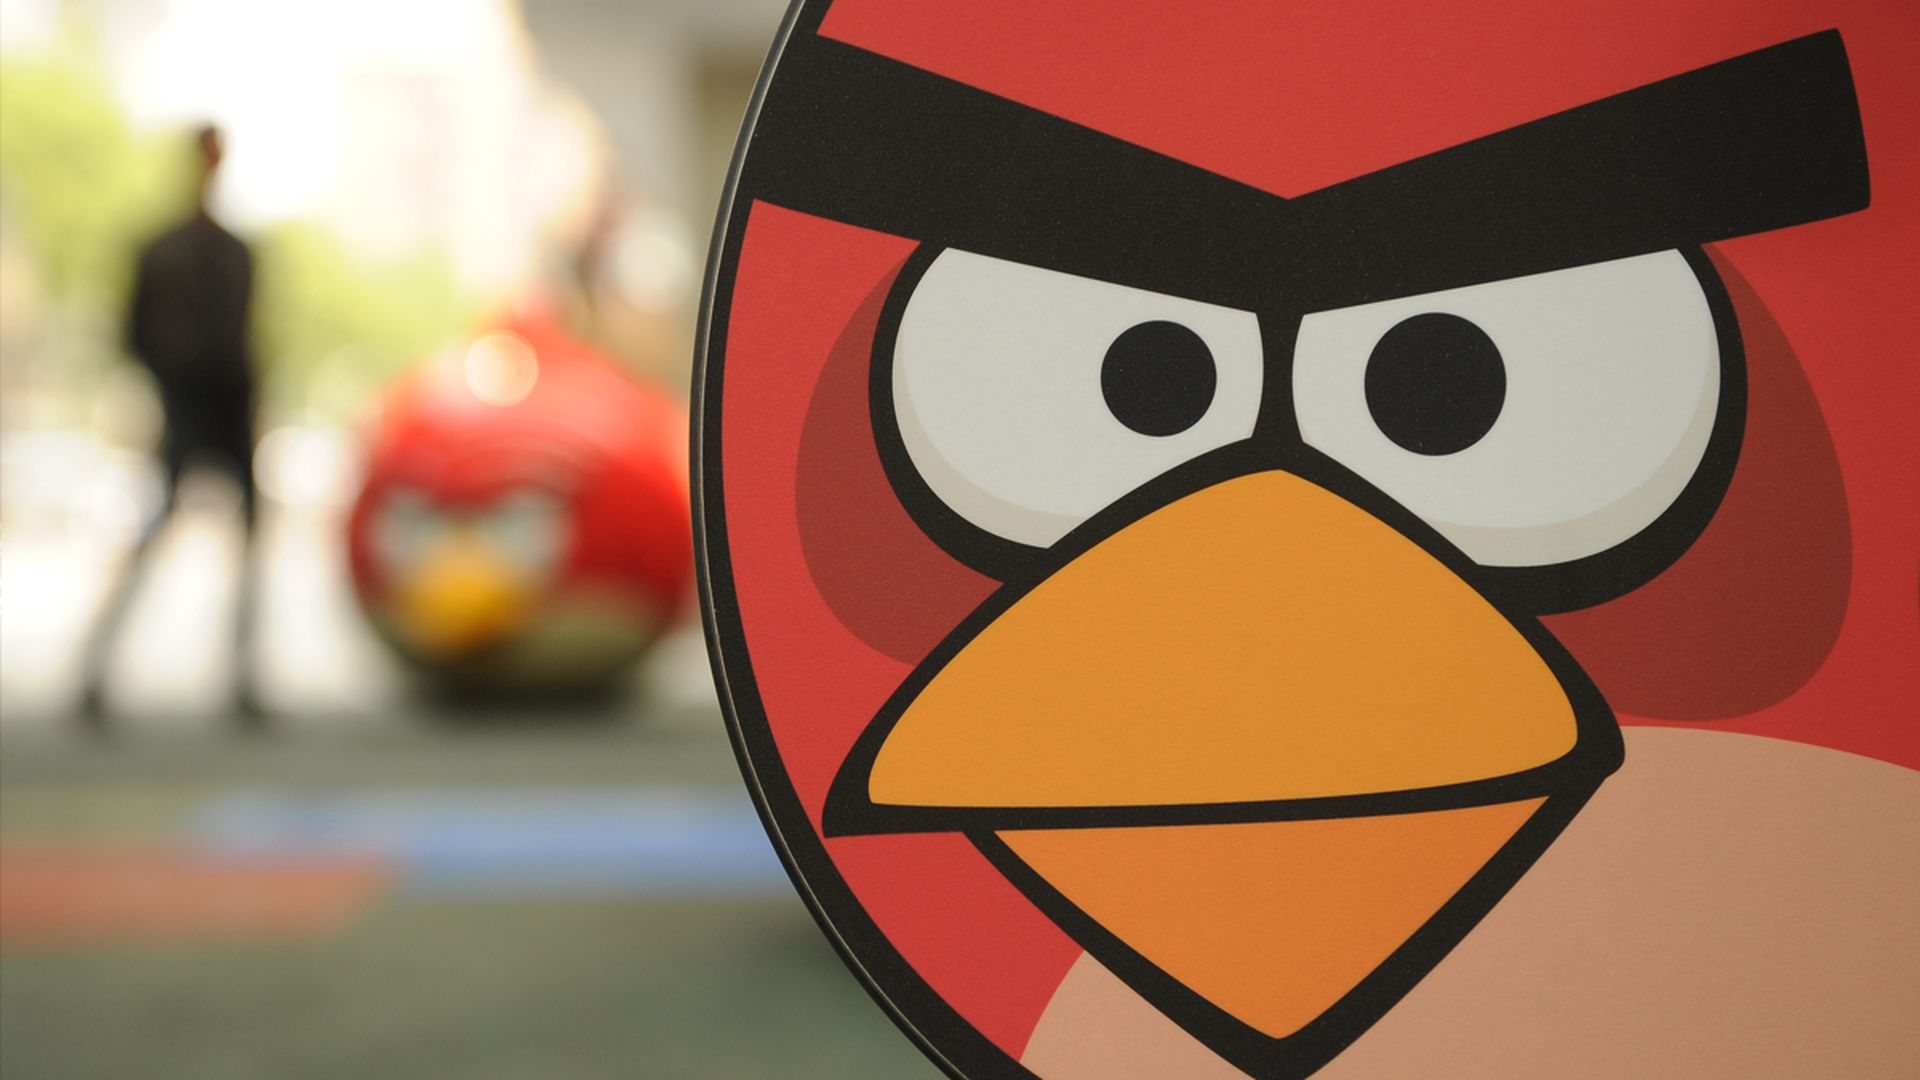 Howstuffworks: The 'Angry Birds' Quiz